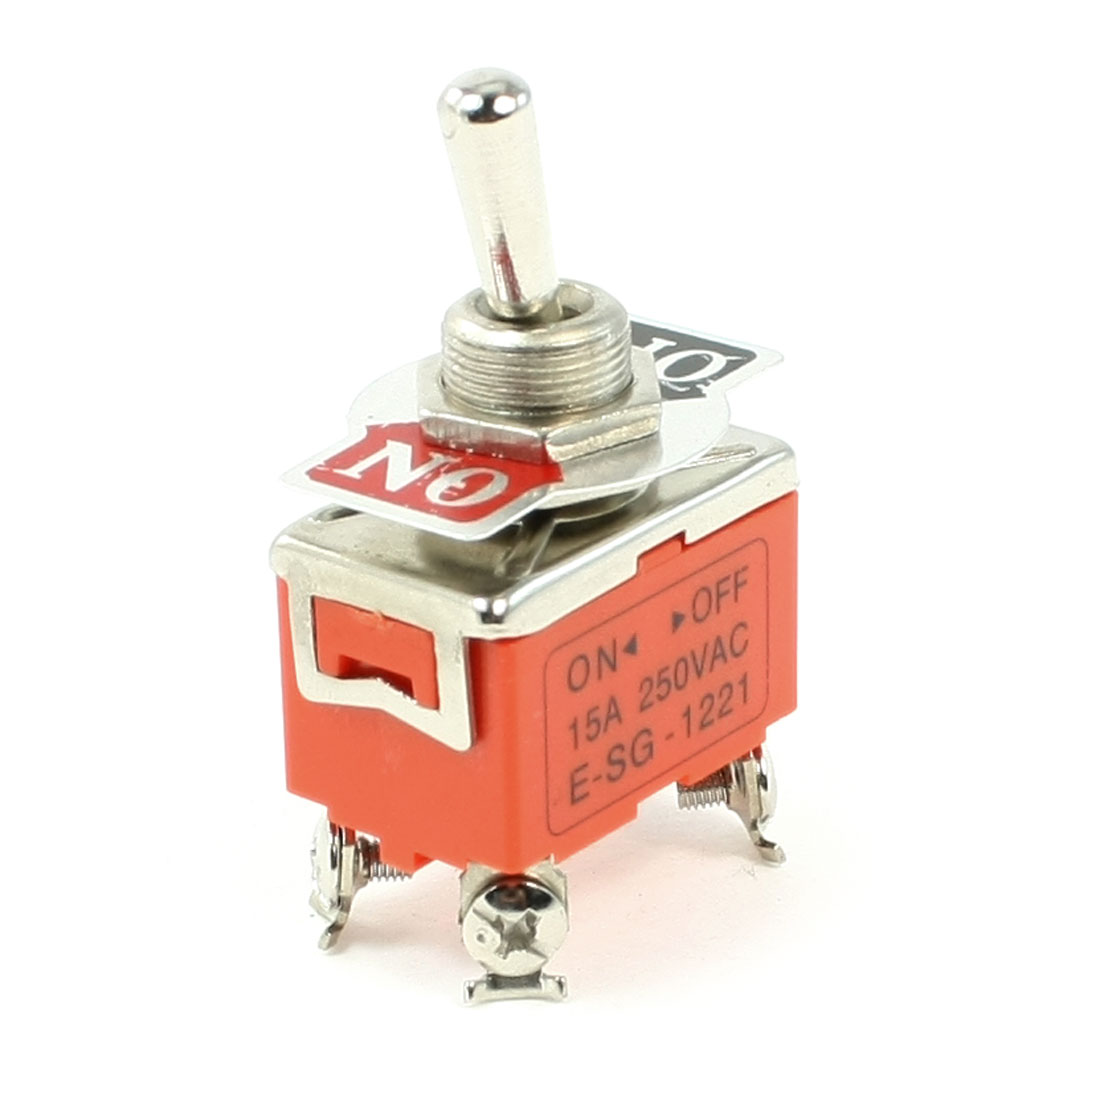 DPST ON/OFF 2 Position 4 Screw Terminals Toggle Switch AC 250V 15A